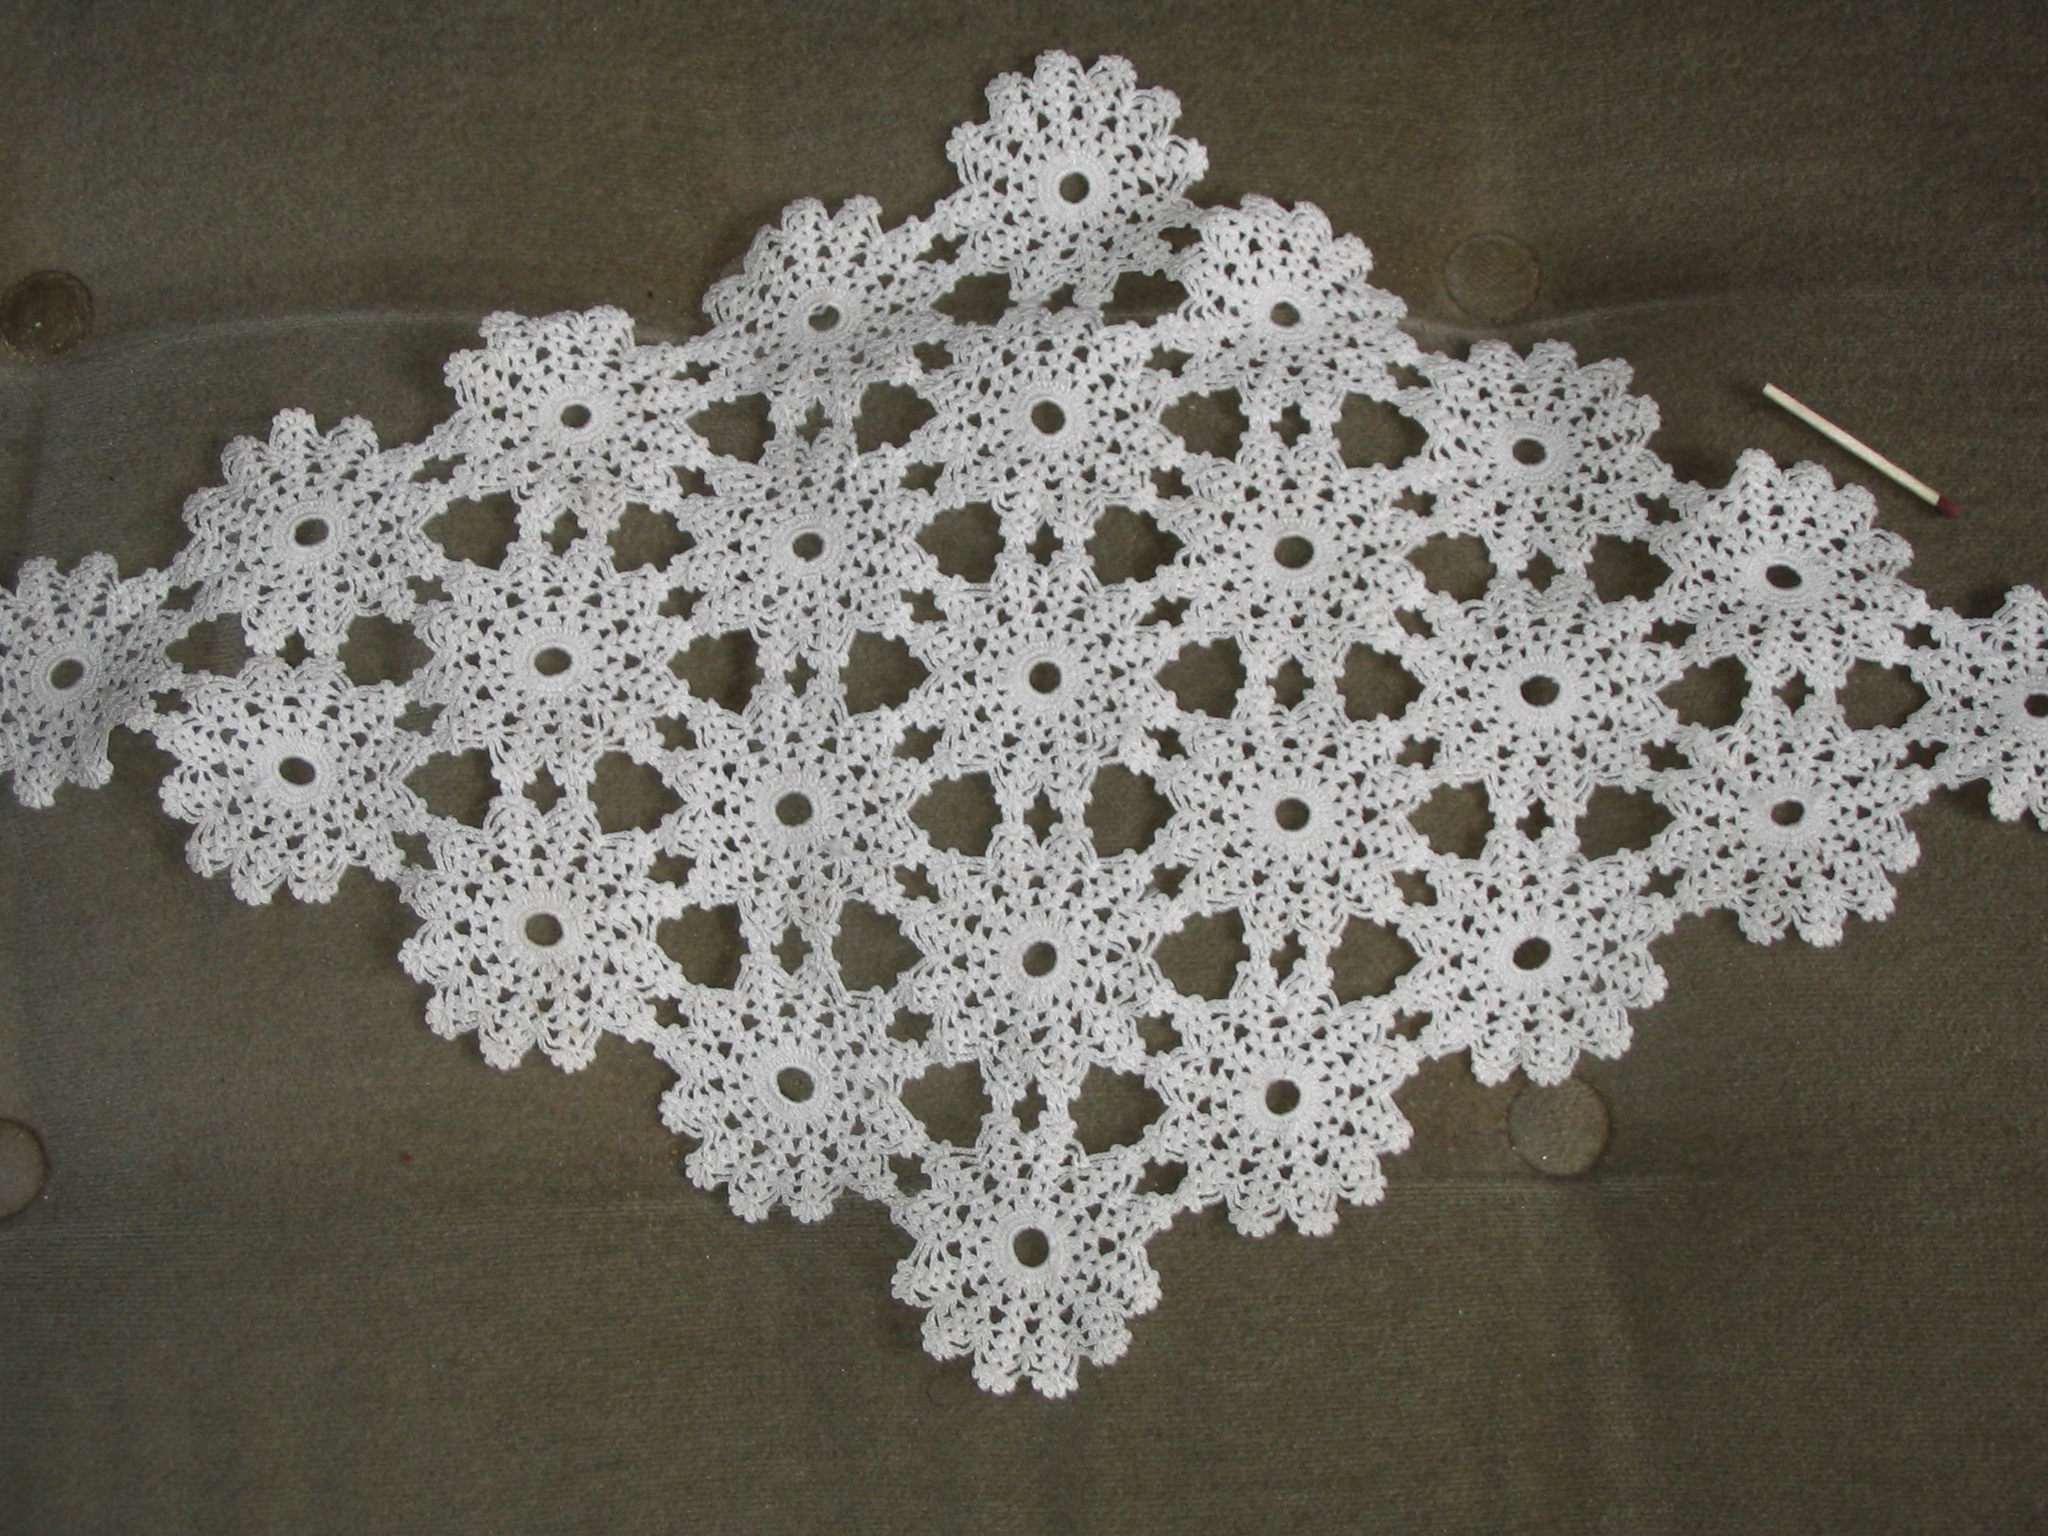 Crochet Stitches Wiki : file file history file usage on commons file usage on other wikis ...